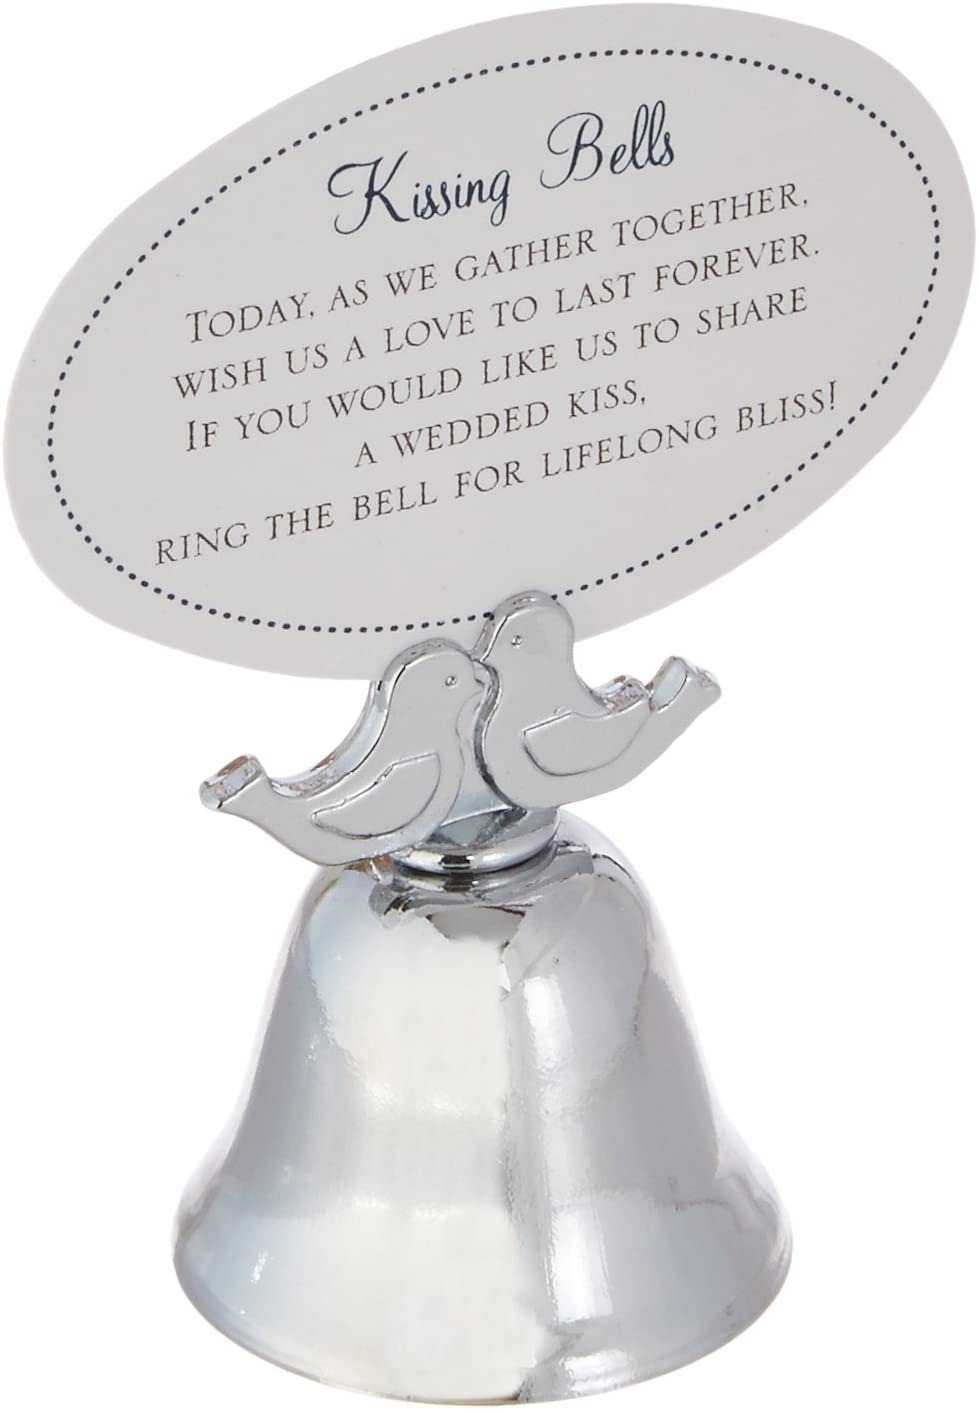 Kate Aspen Love Birds Kissing Bell Place Card Holder, Ringing Bells, Party Guest Favors/Gifts, Silver Finish, Set of 24